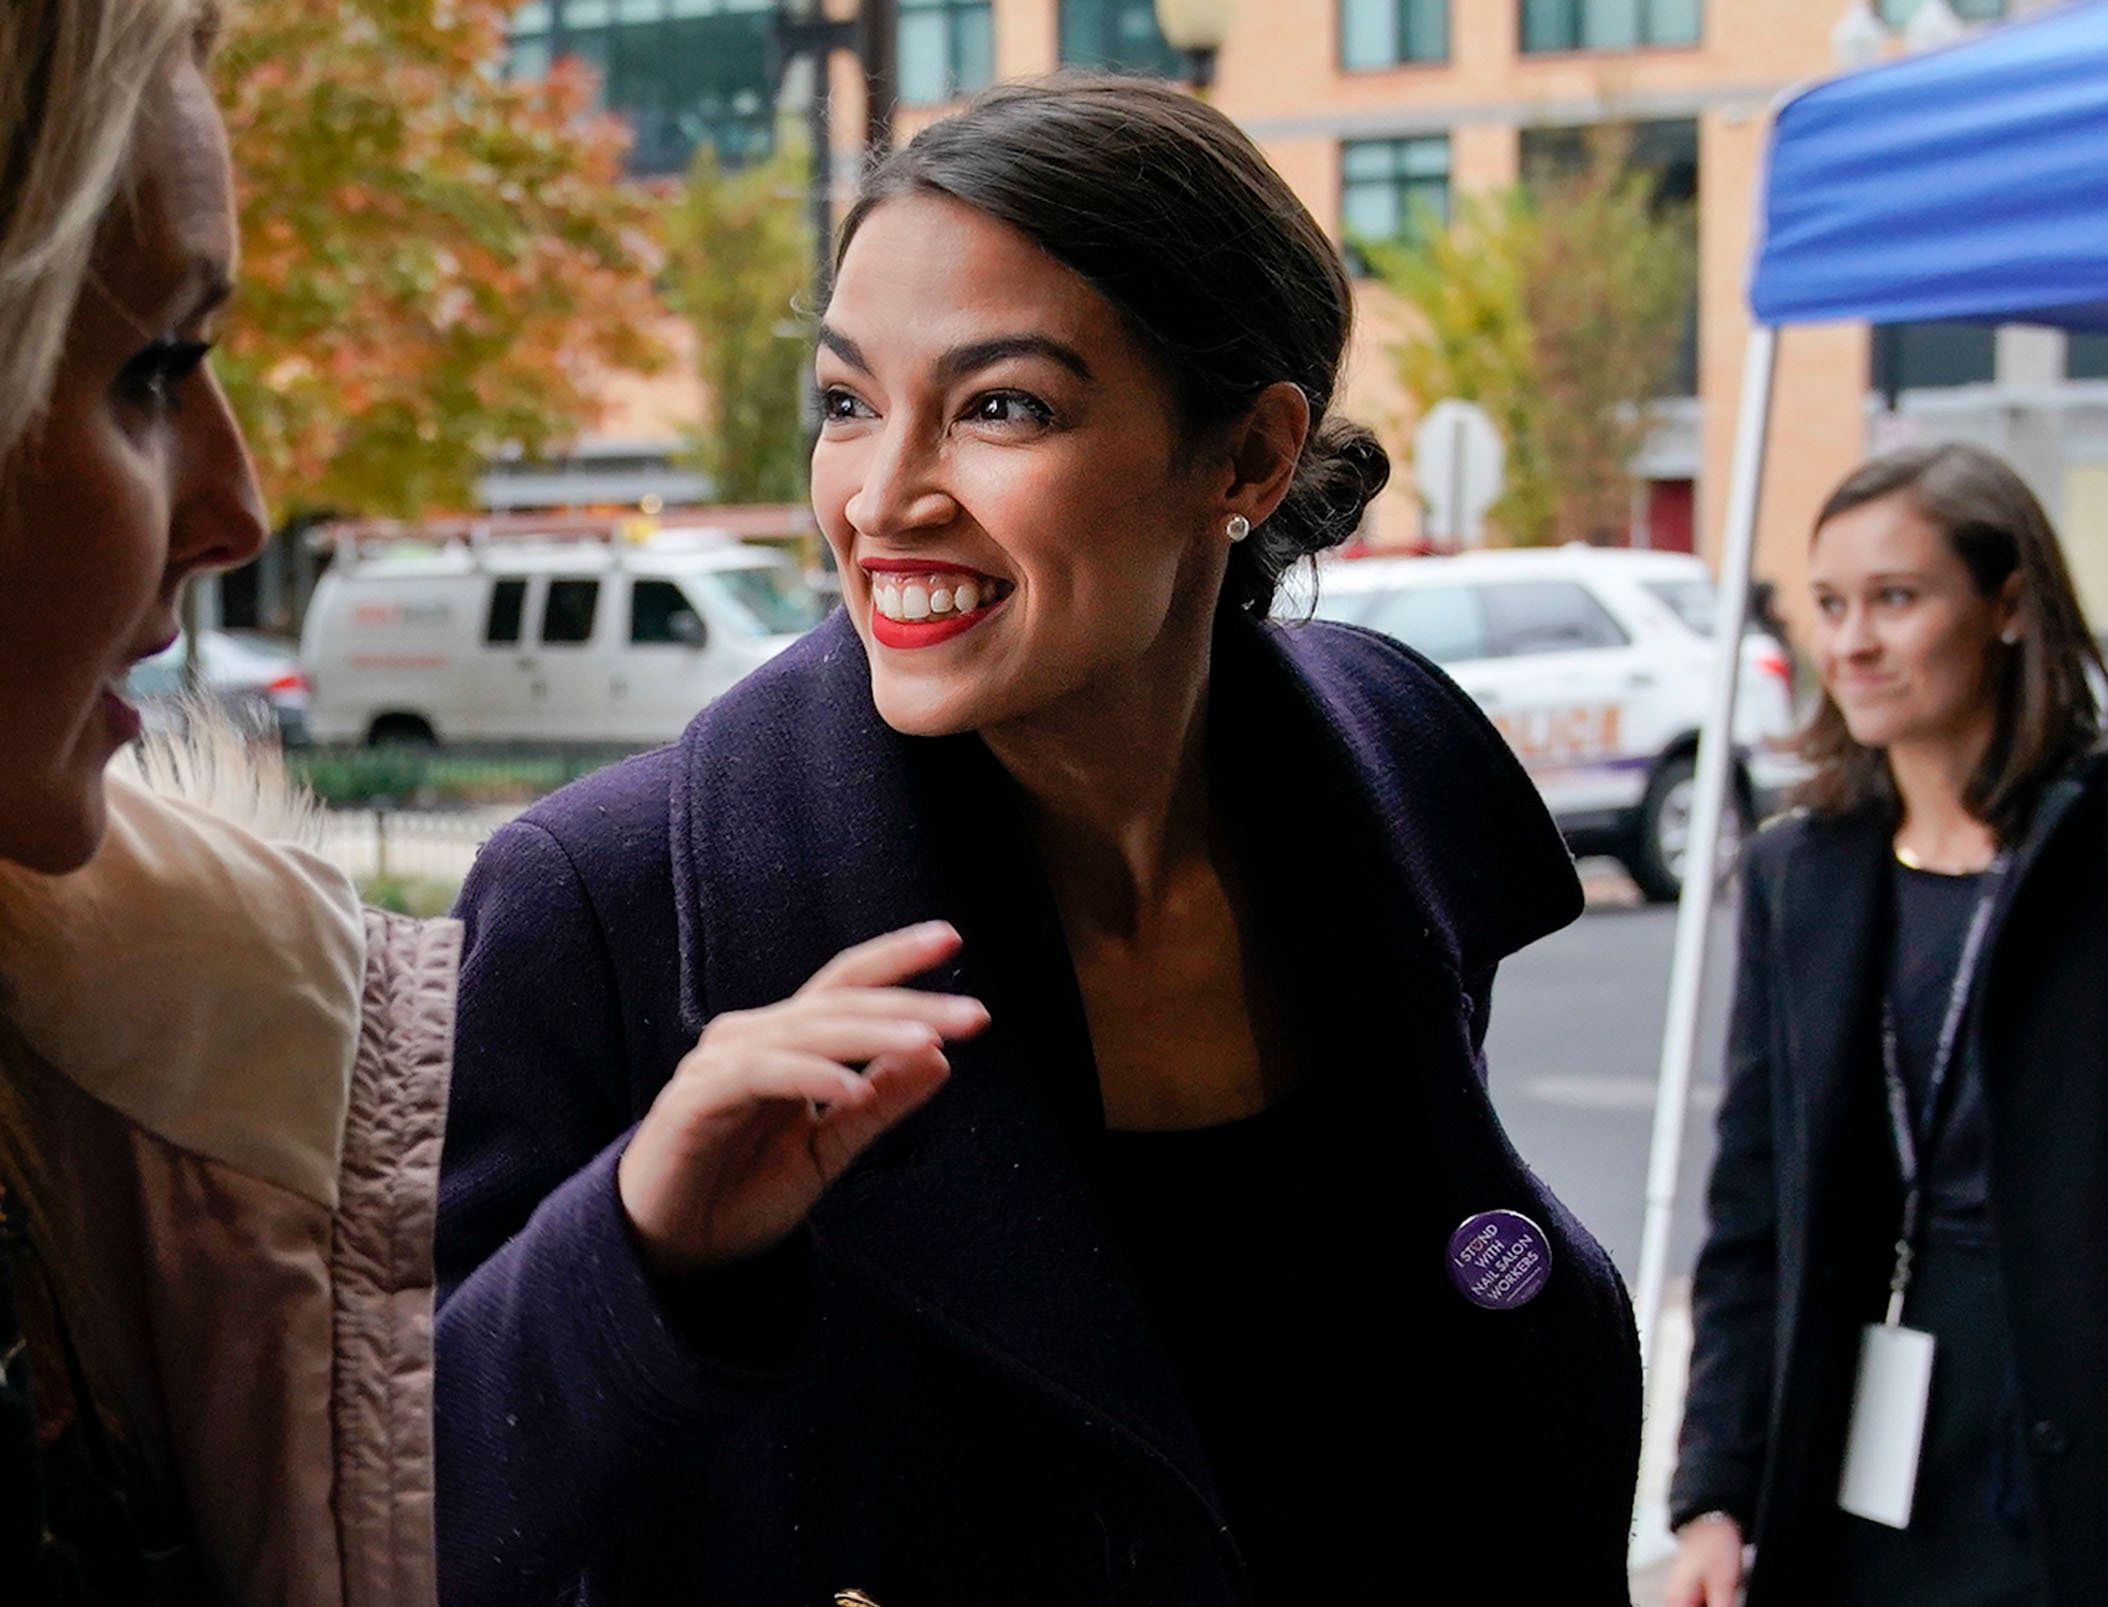 Rep.-elect Alexandria Ocasio-Cortez, D-NY., arrives for orientation for new members of Congress, Tuesday, Nov. 13, 2018, in Washington. (AP Photo/Pablo Martinez Monsivais)